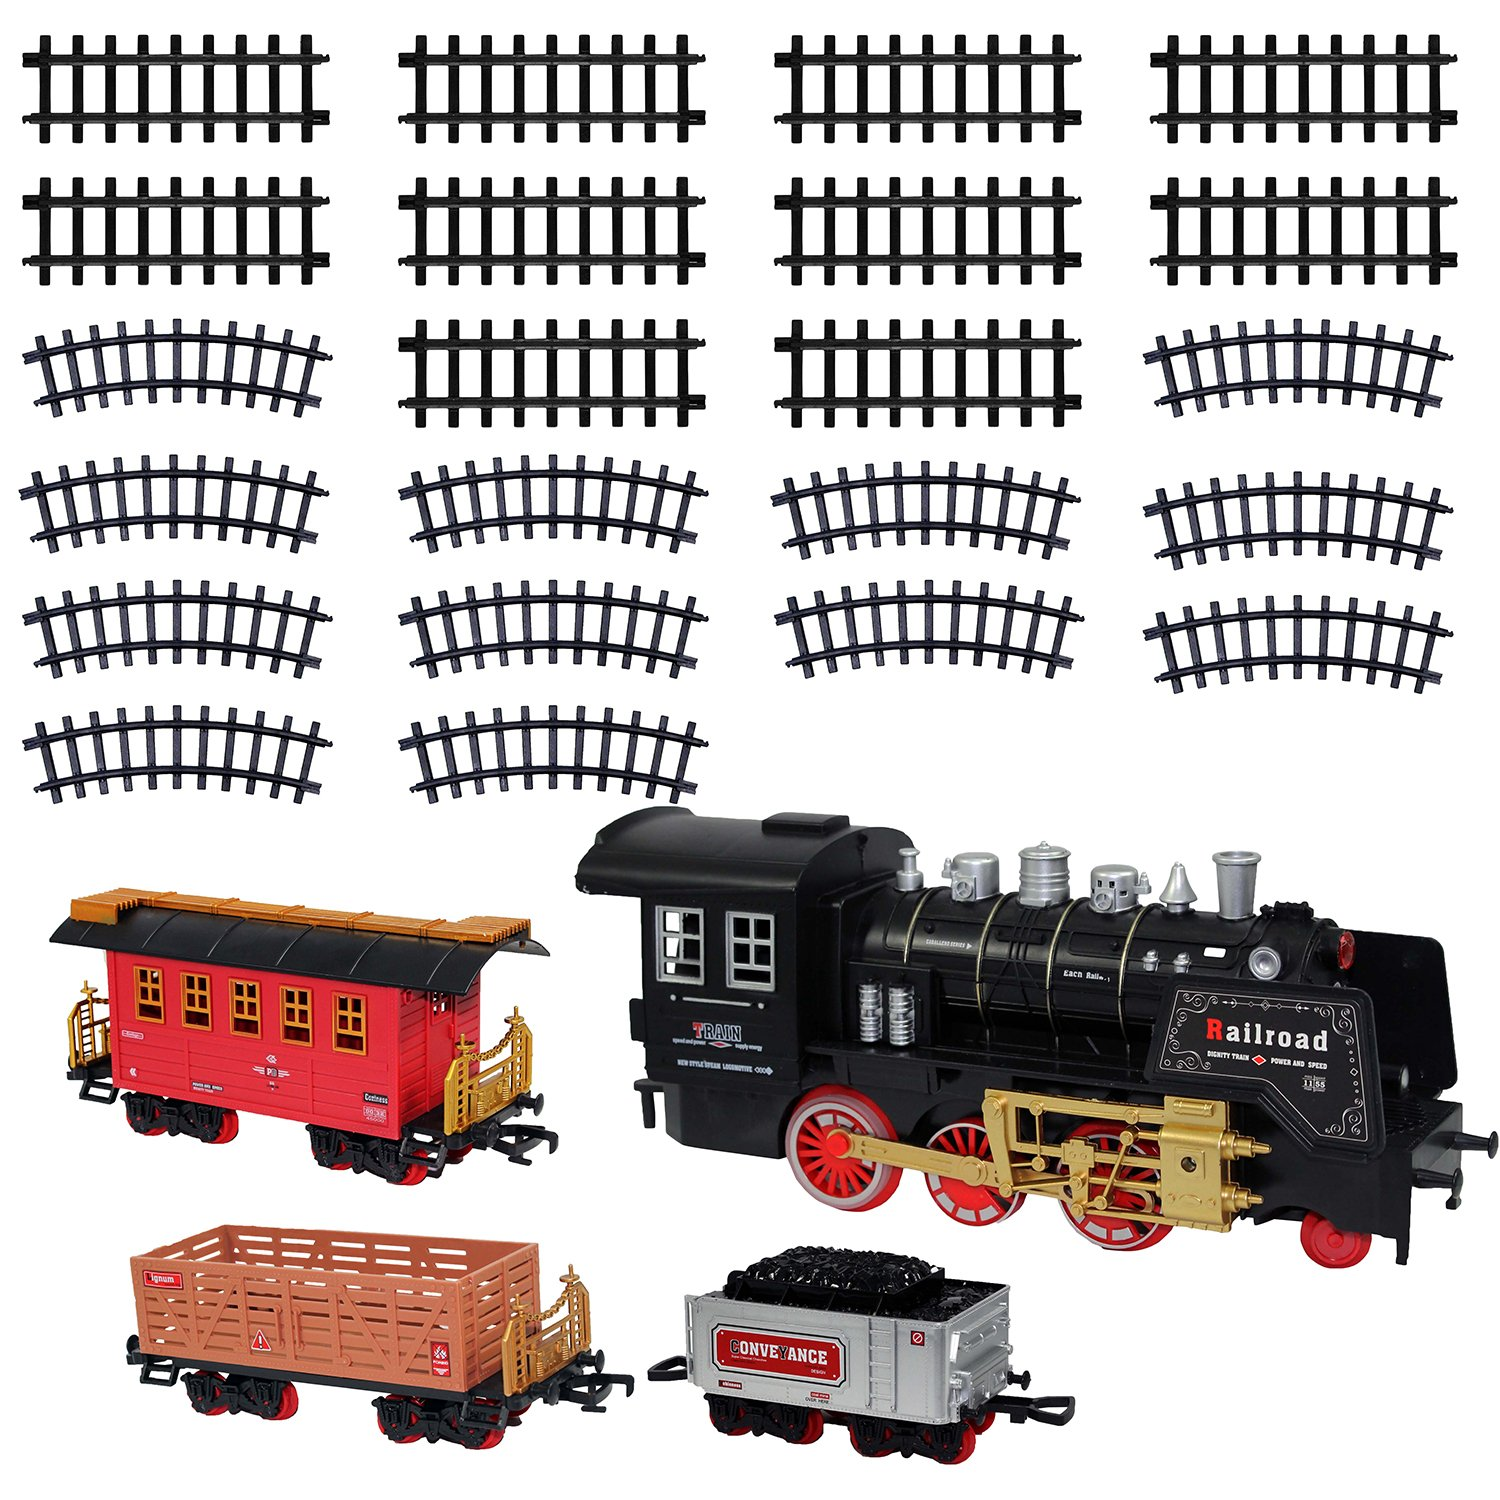 Christmas Electric Toy Train Set - Classic Locomotive Model Train Sets for Under the Tree with Light And Realistic Sounds - 22' Tracks Long Christmas Tree Train Set for Toddlers, Kids or Adults